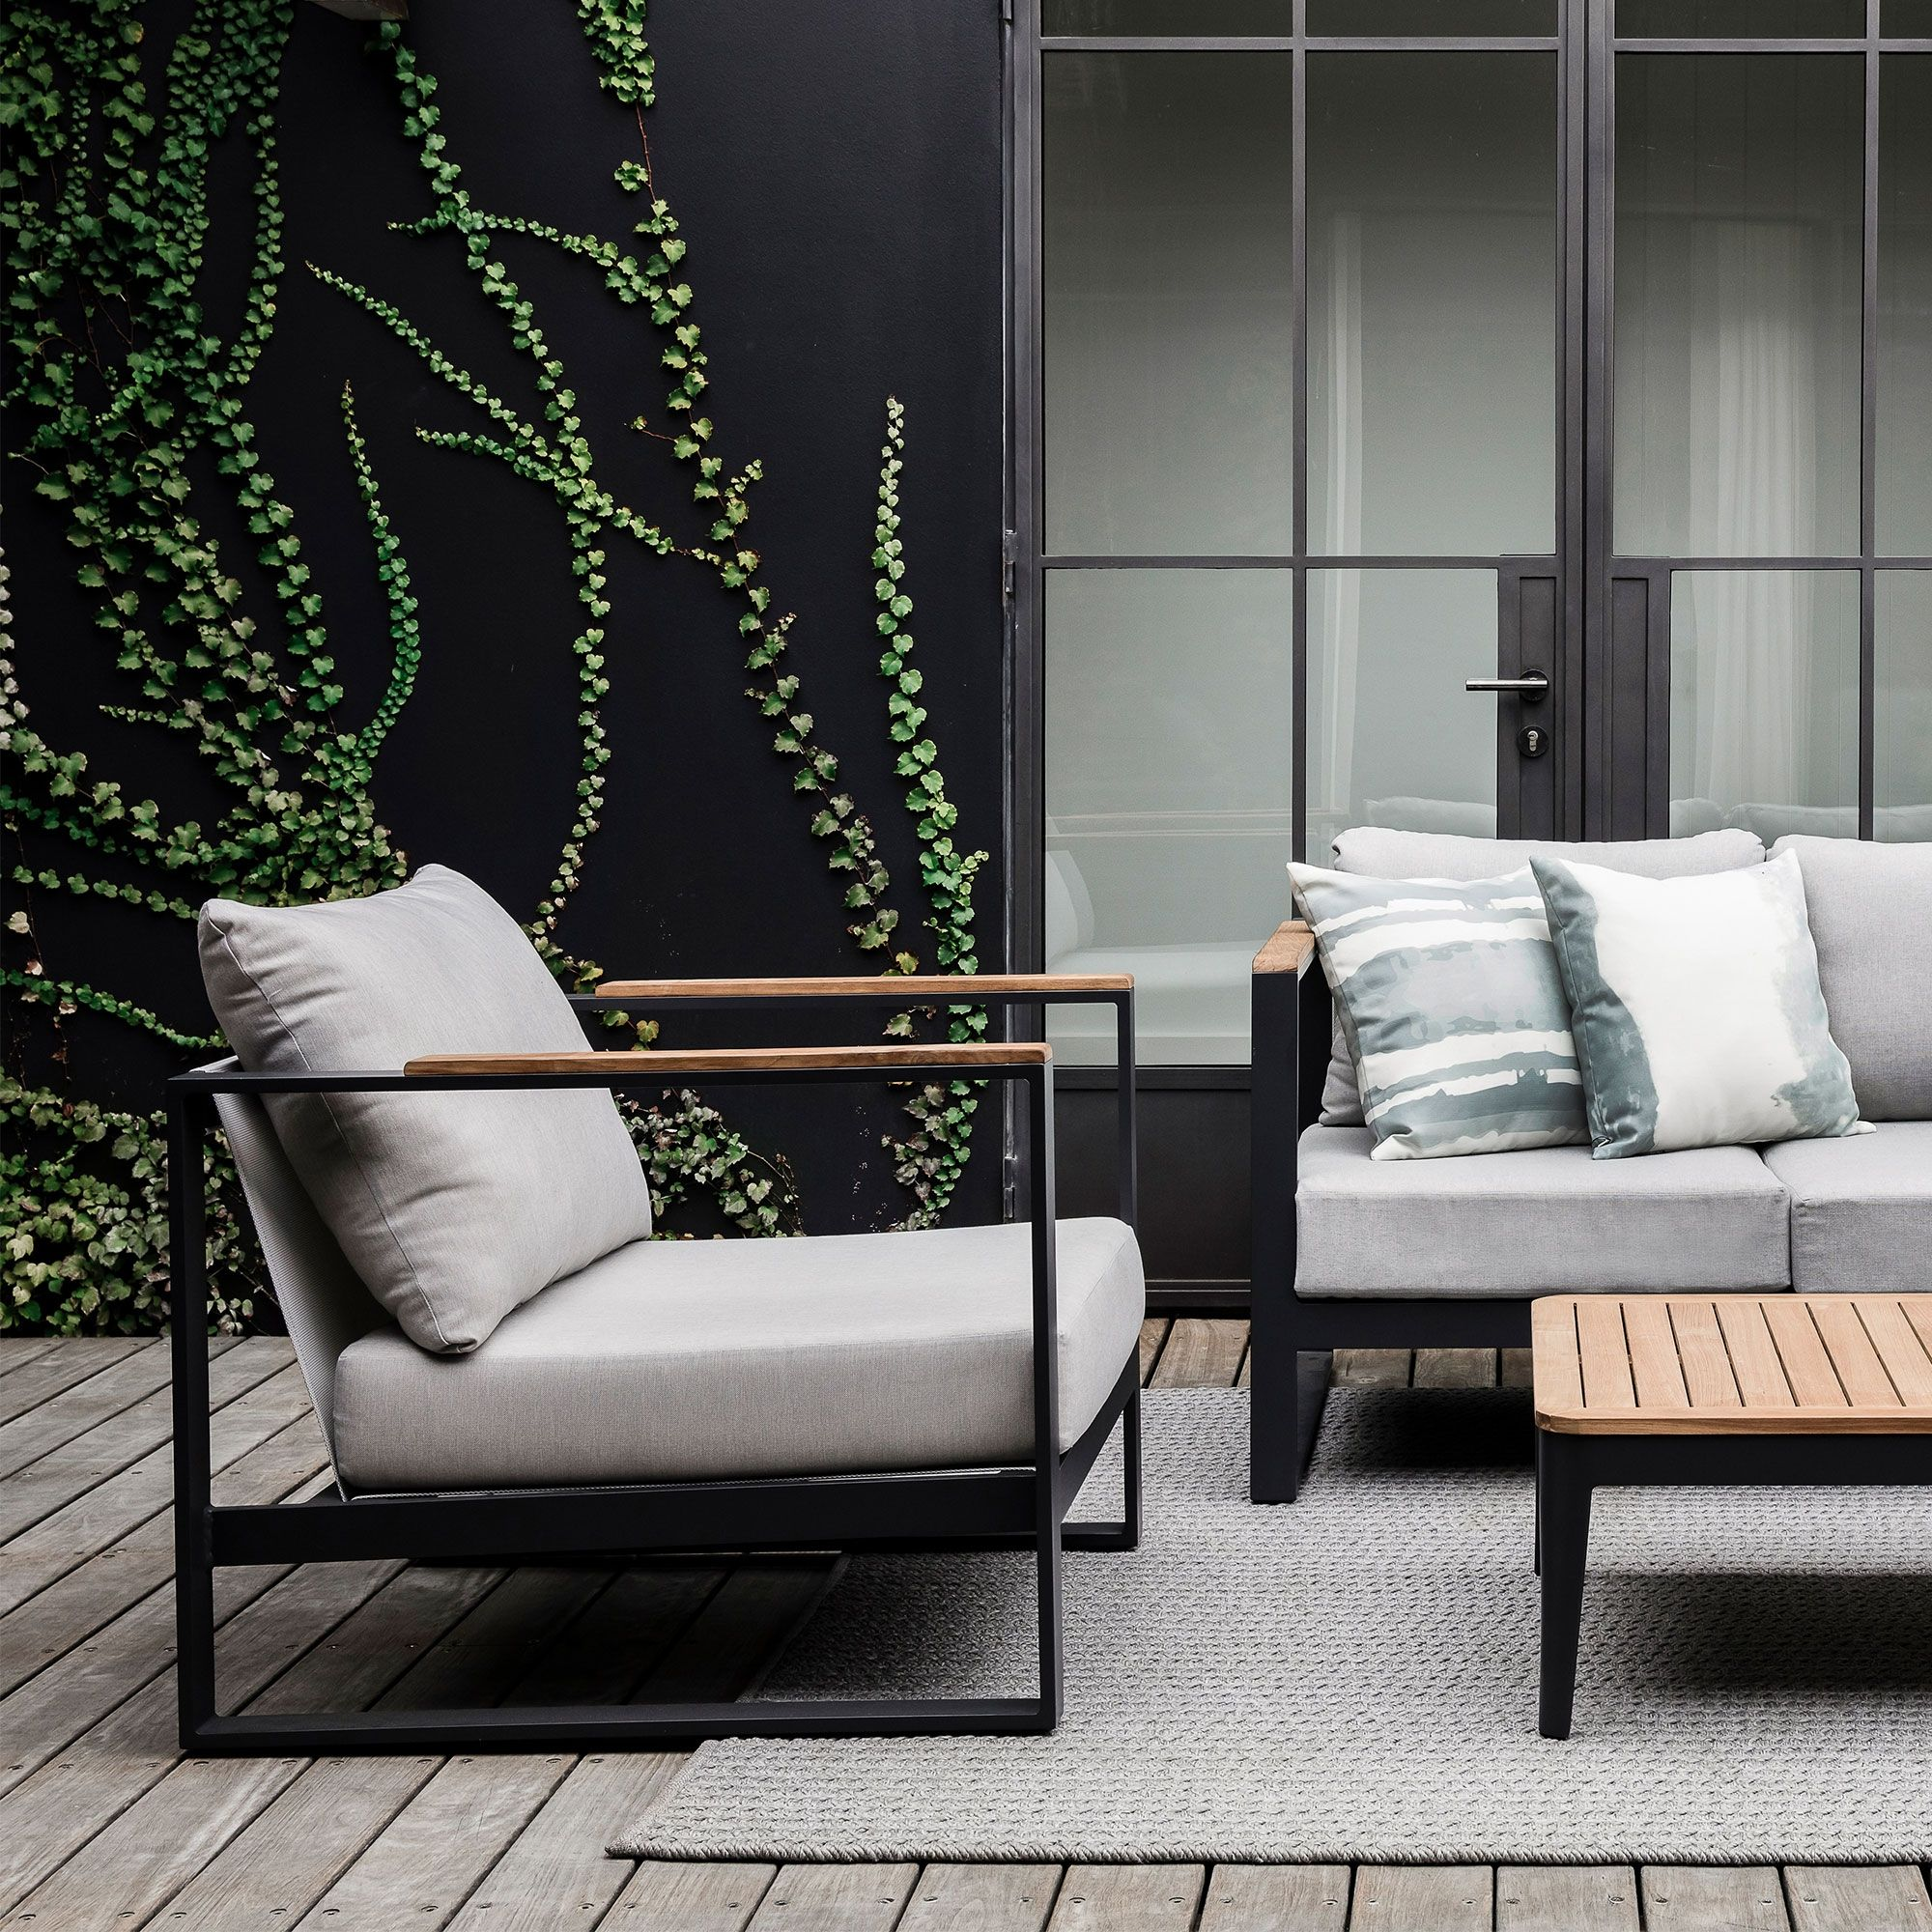 Barcelona Outdoor Armchair is part of Outdoor armchair - Contemporary and classic outdoor chair for comfortable seating